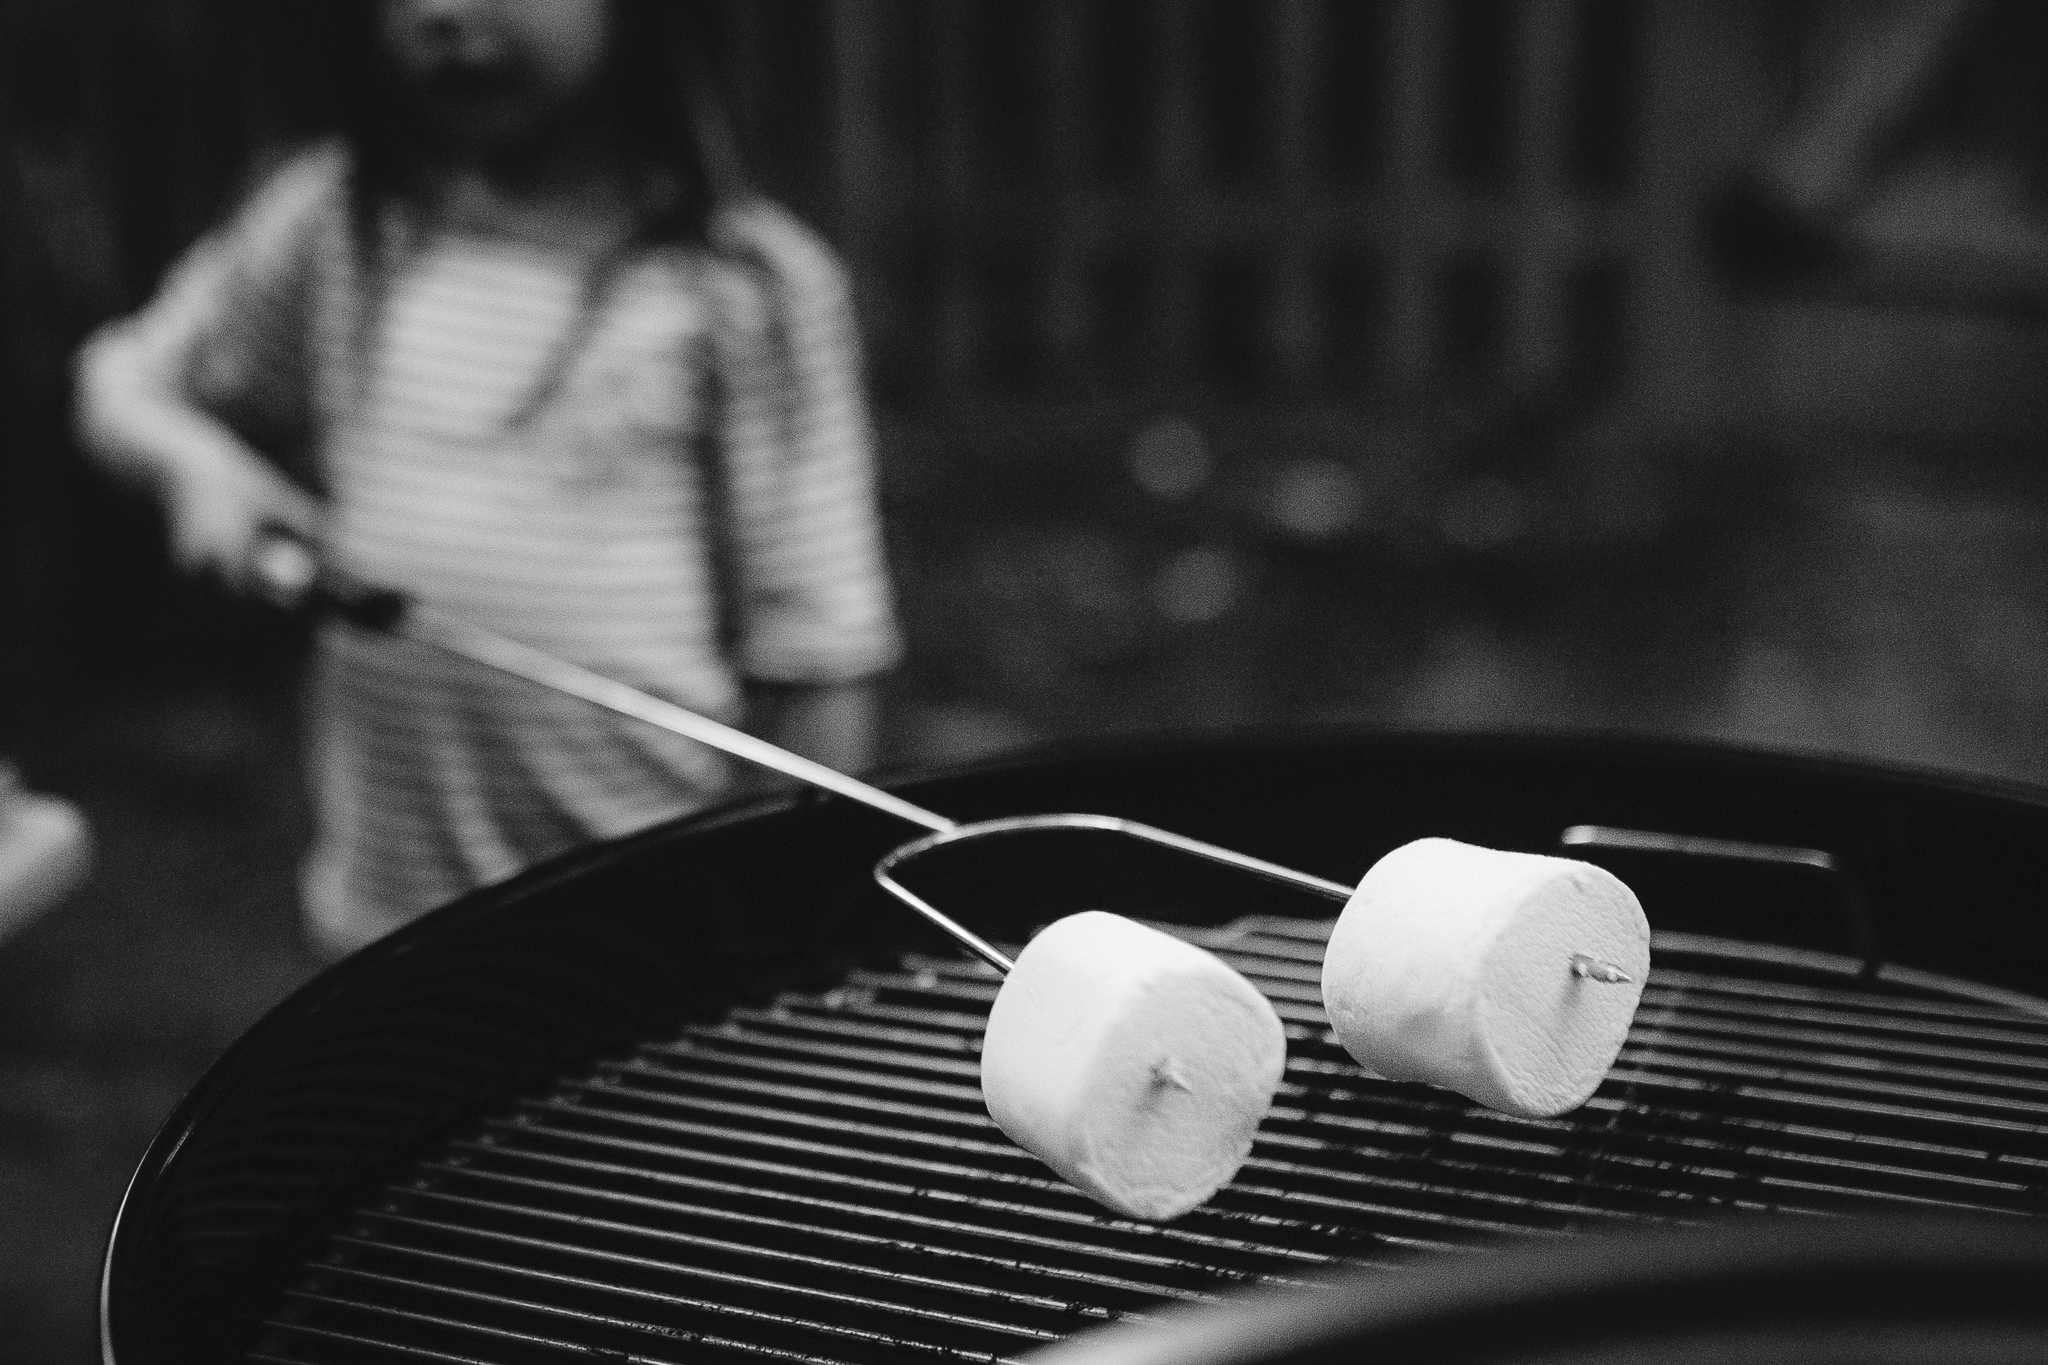 black and white girl roasting marshmallows charcoal grill details smoressummer Ashburn Loudoun Northern Virginia family lifestyle documentary childhood Marti Austin Photography